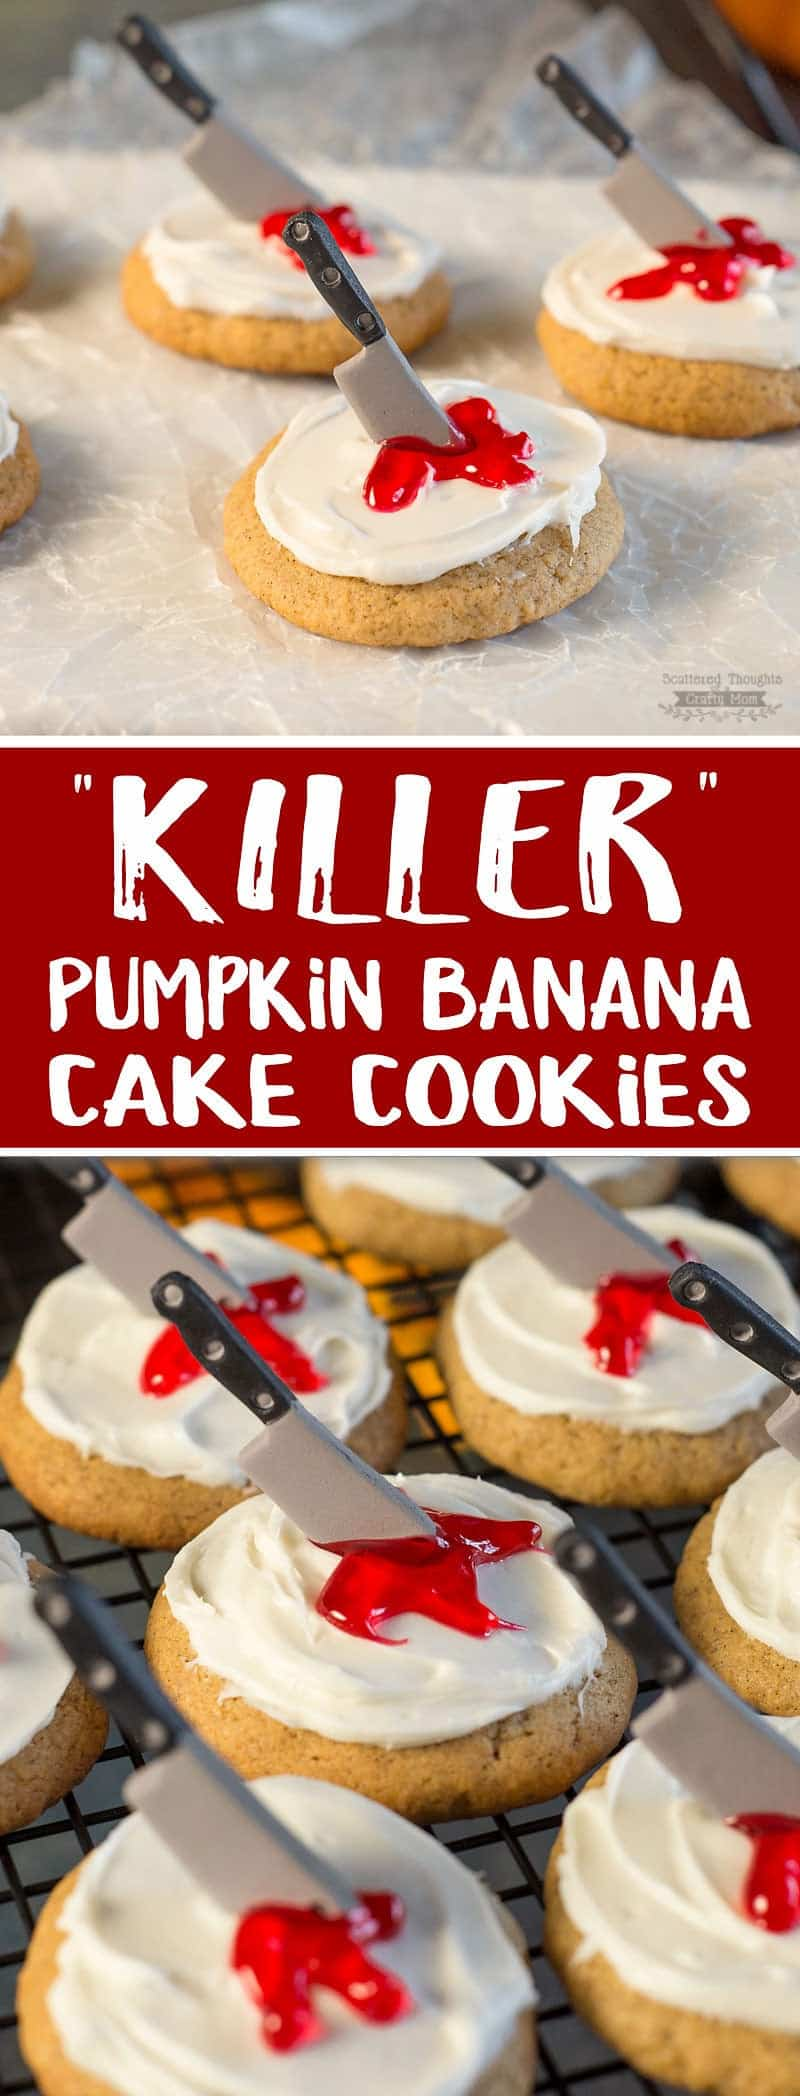 Need an easy Halloween Cookie idea? These Killer Pumpkin Banana Cookies are perfect for you Halloween Party!